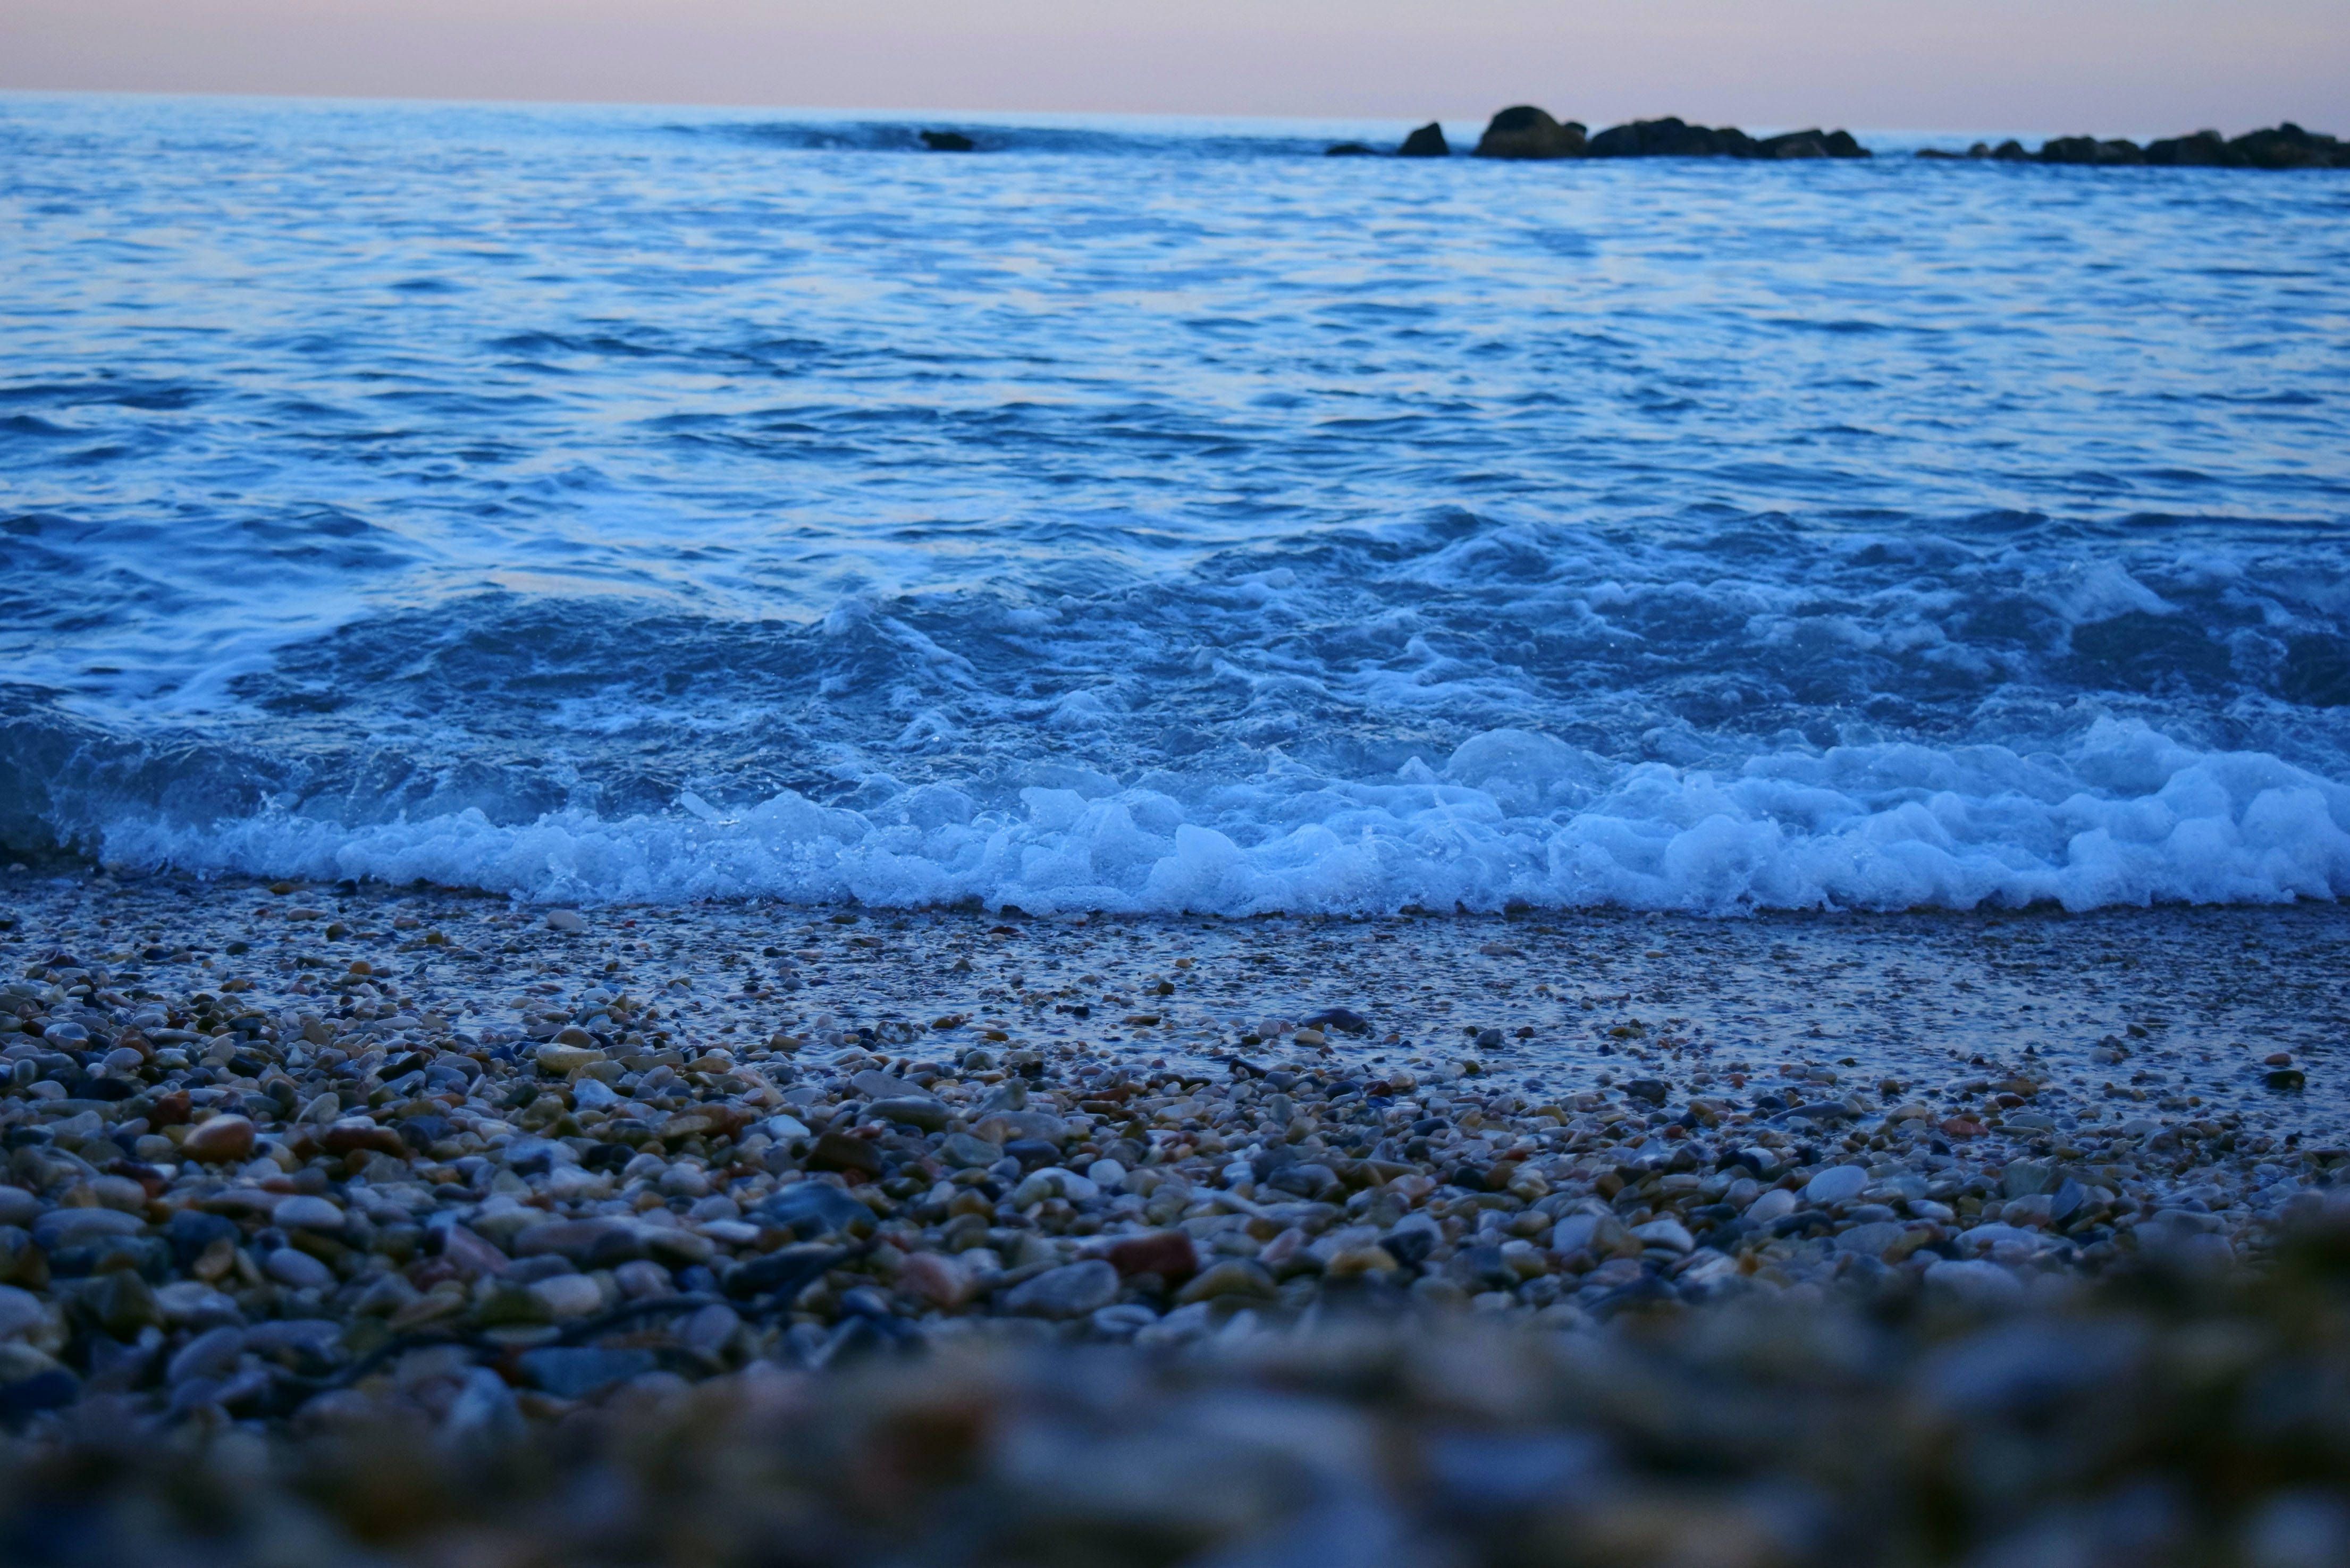 Free stock photo of 4k wallpaper, adriatic sea, android wallpaper, background